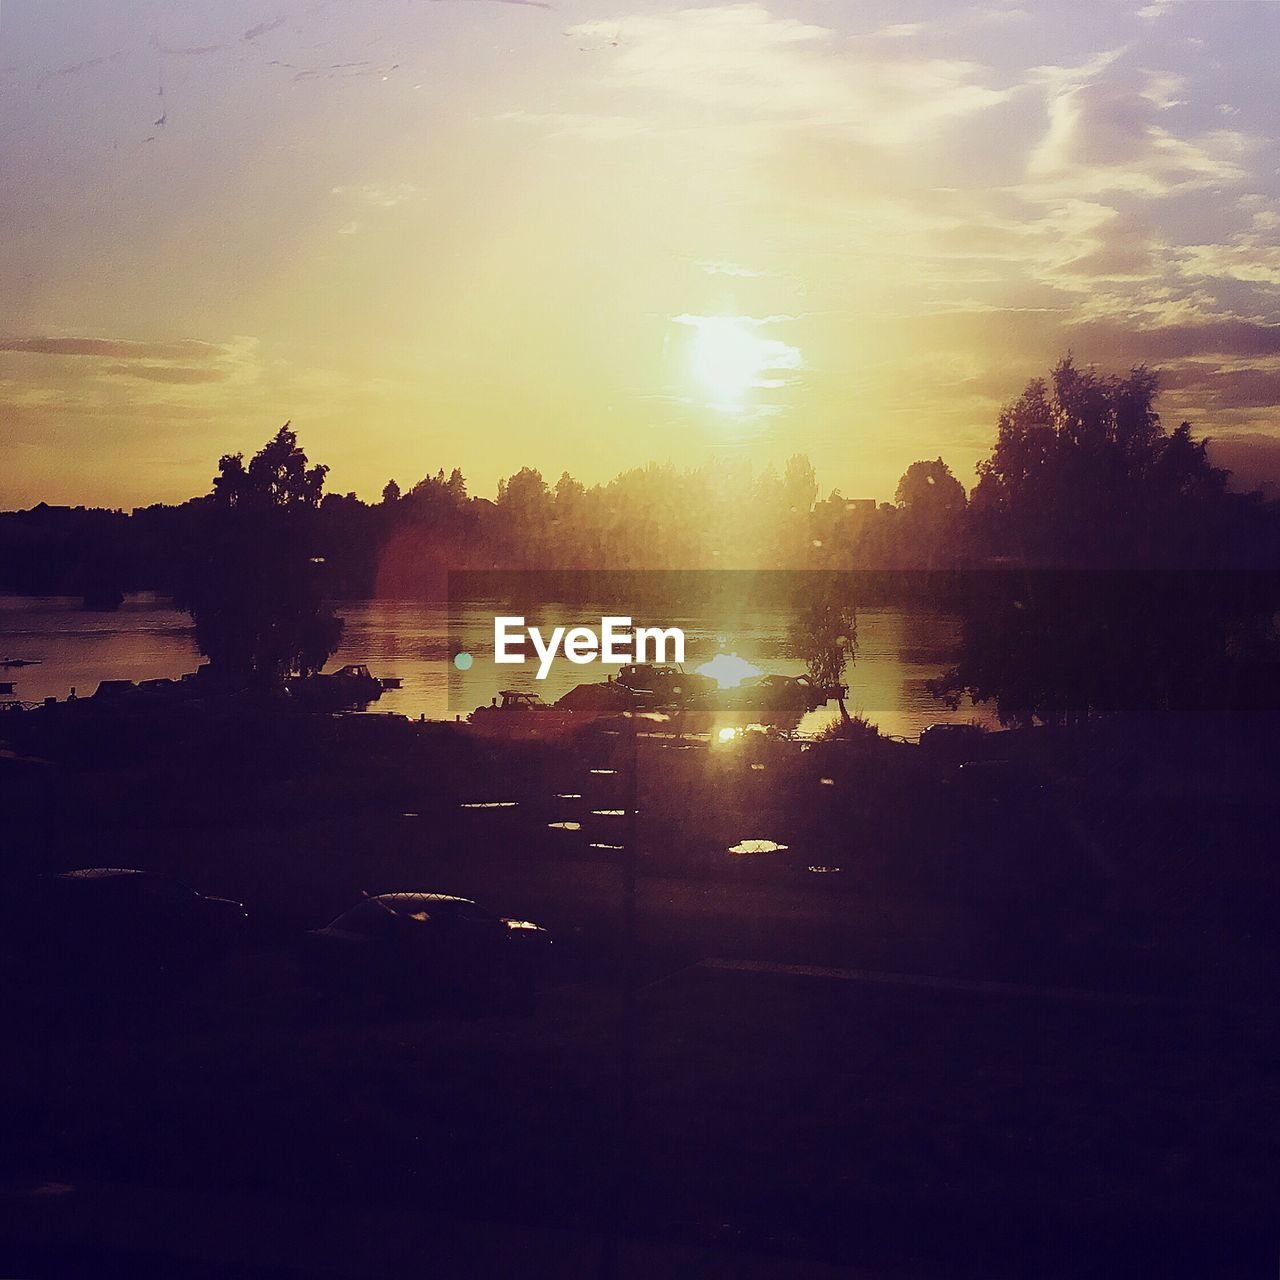 sunset, silhouette, sun, sky, tree, nature, sunlight, no people, water, outdoors, beauty in nature